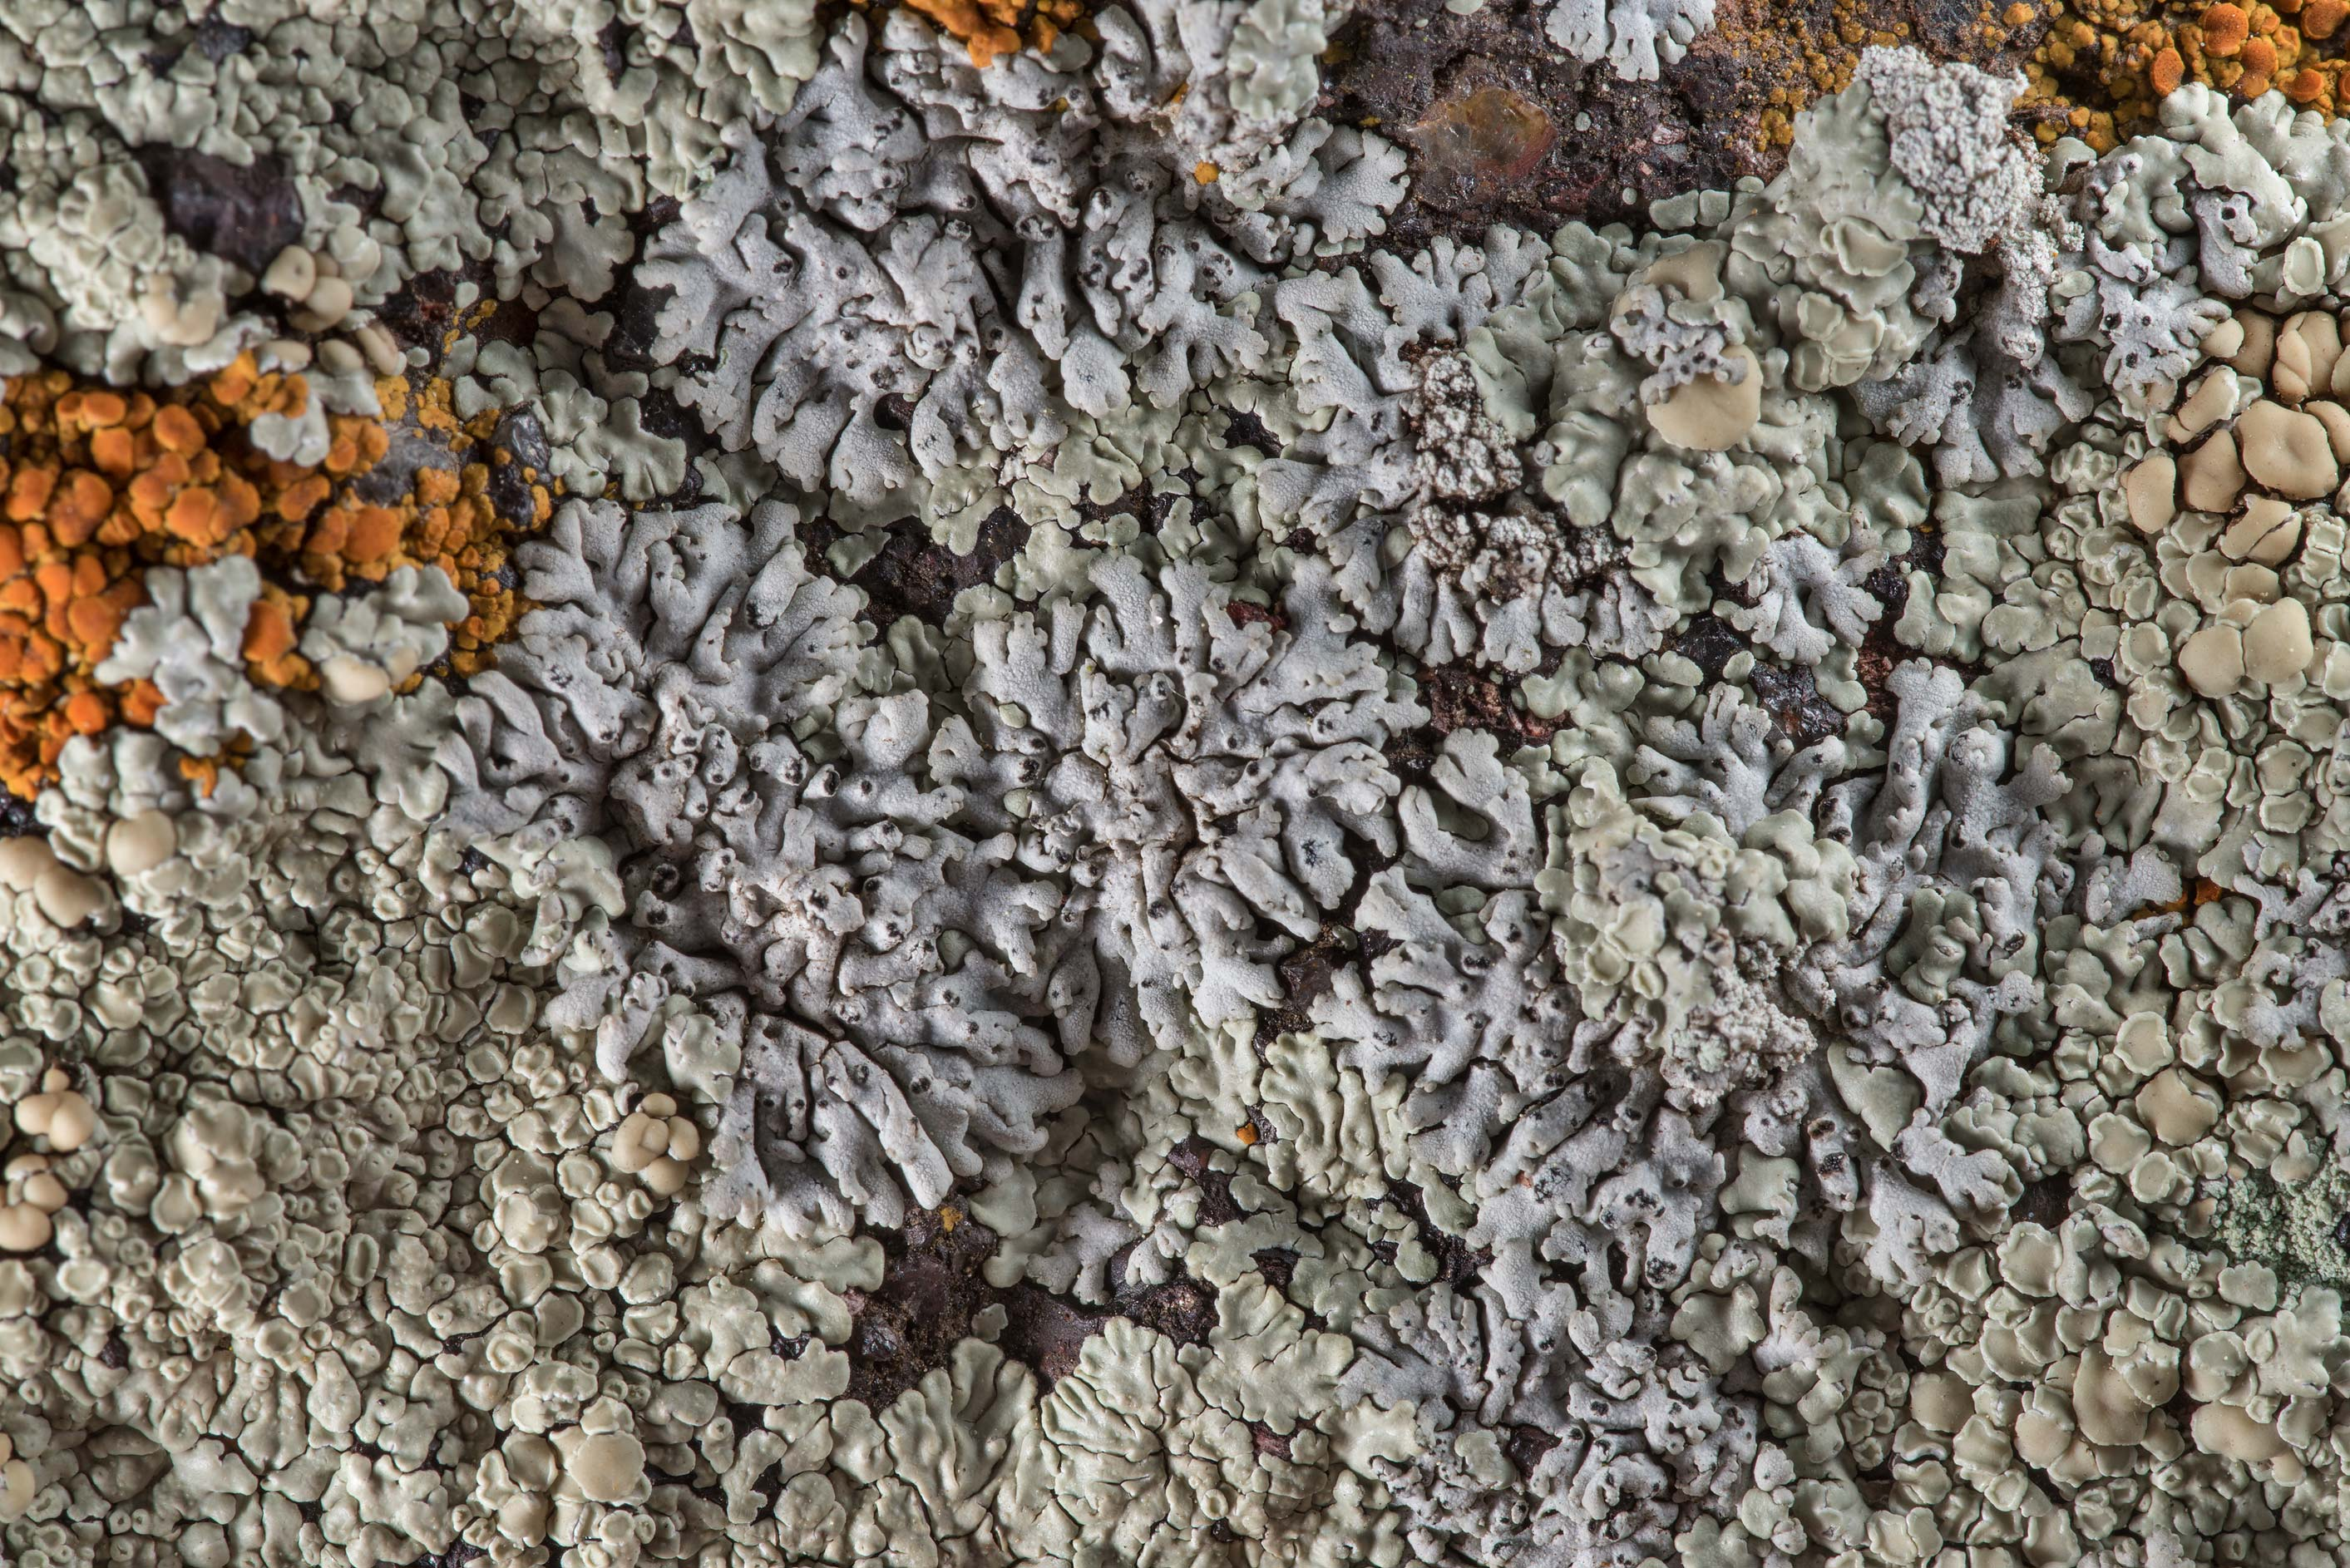 Rosette lichen (Physcia) with Lecanora muralis on...in Bastrop State Park. Bastrop, Texas